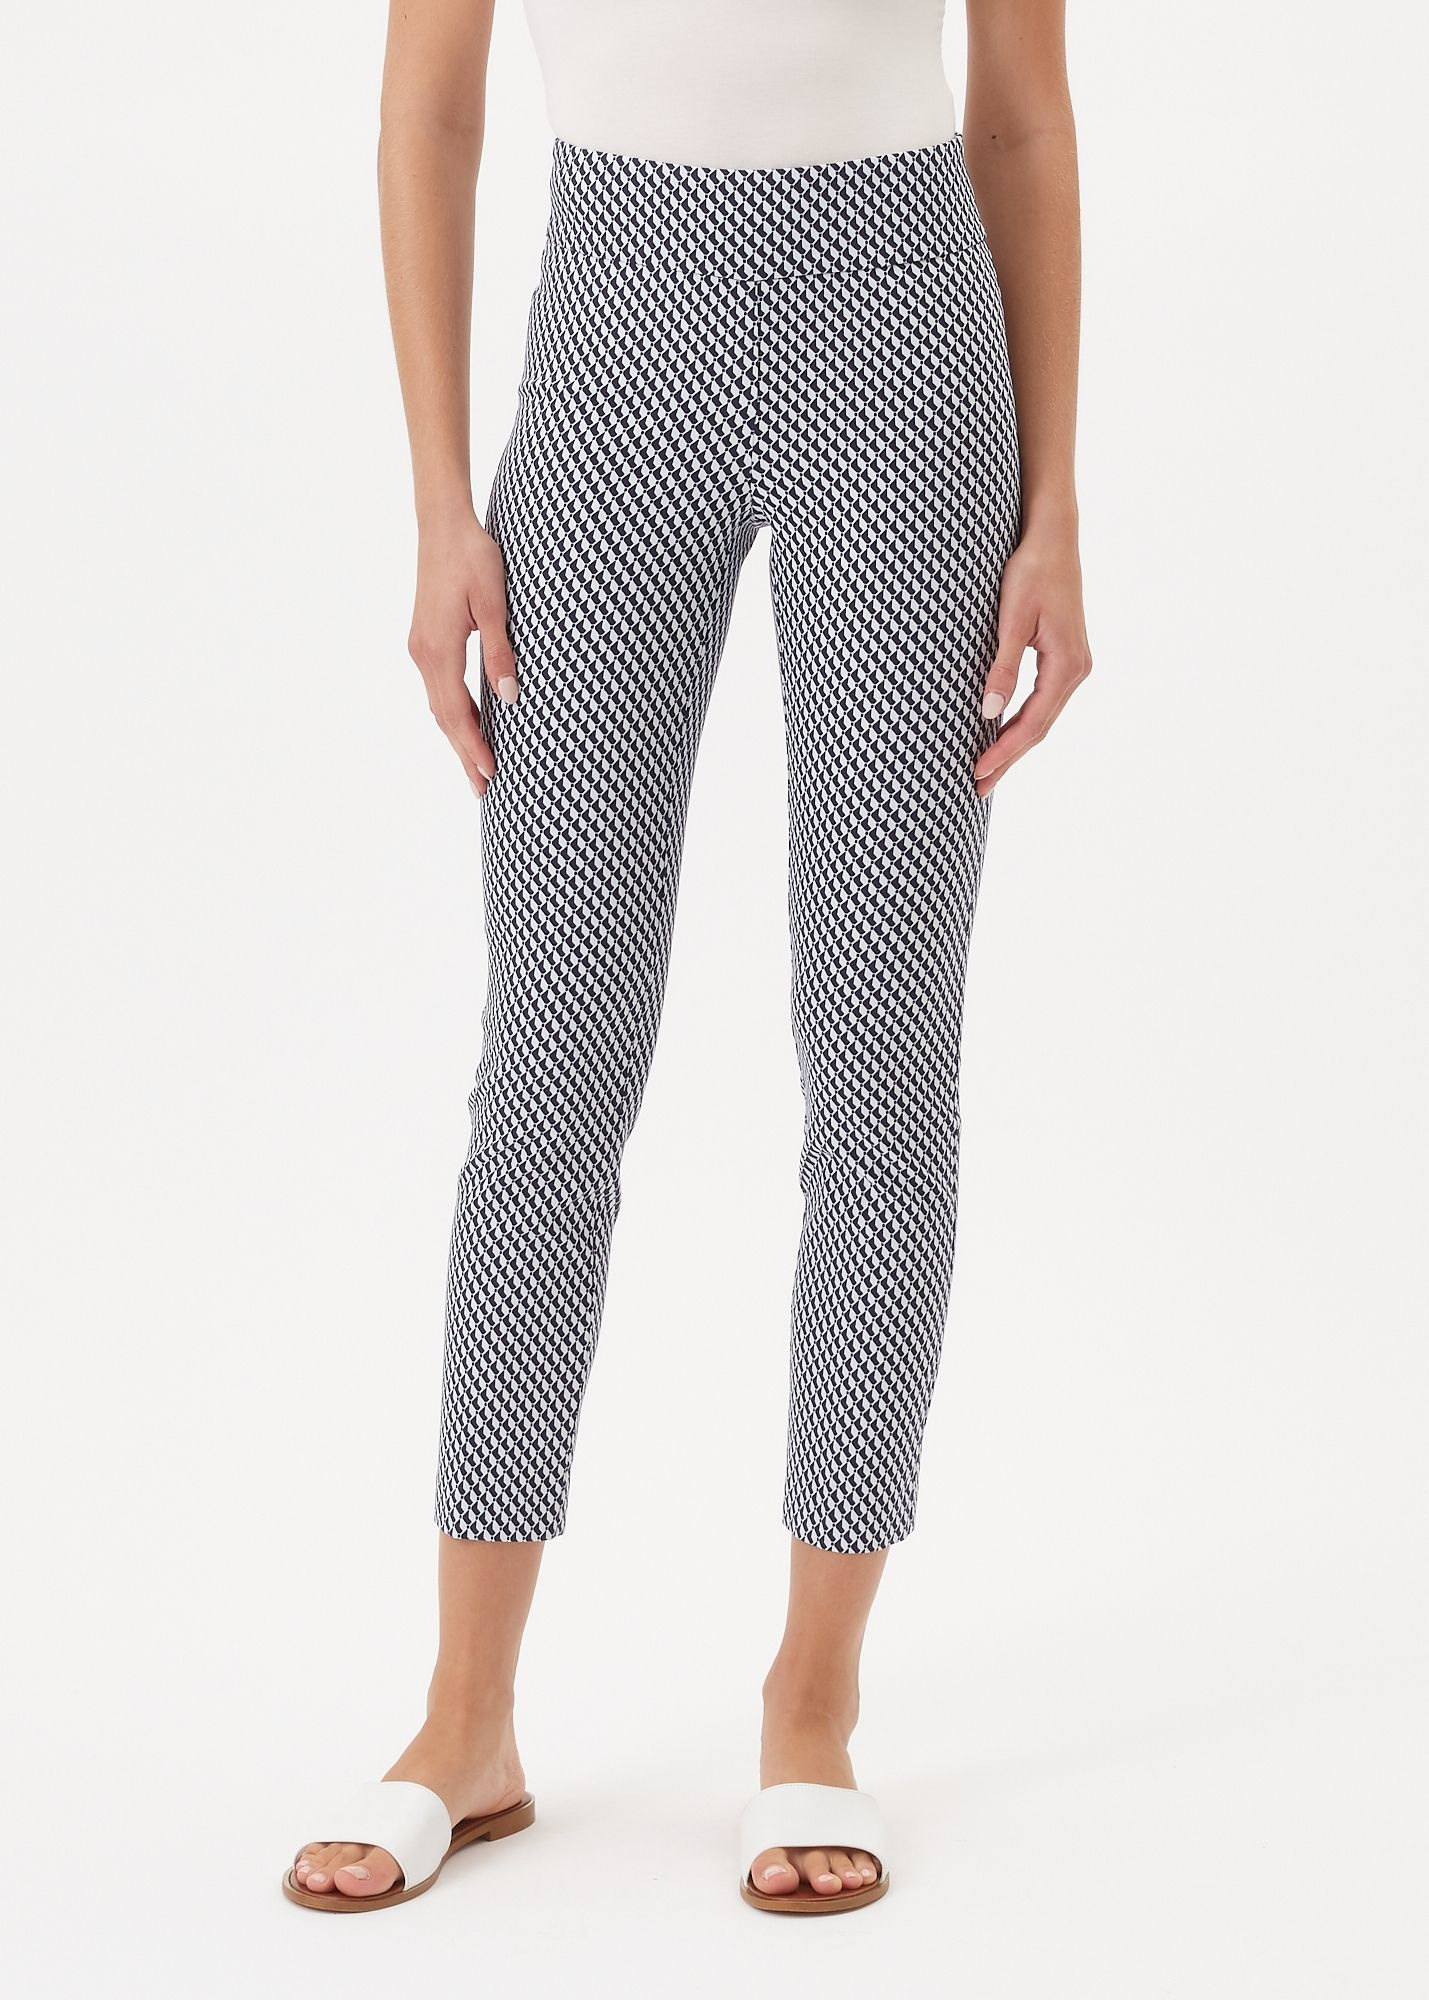 Up Ankle Pant Navy White Geo